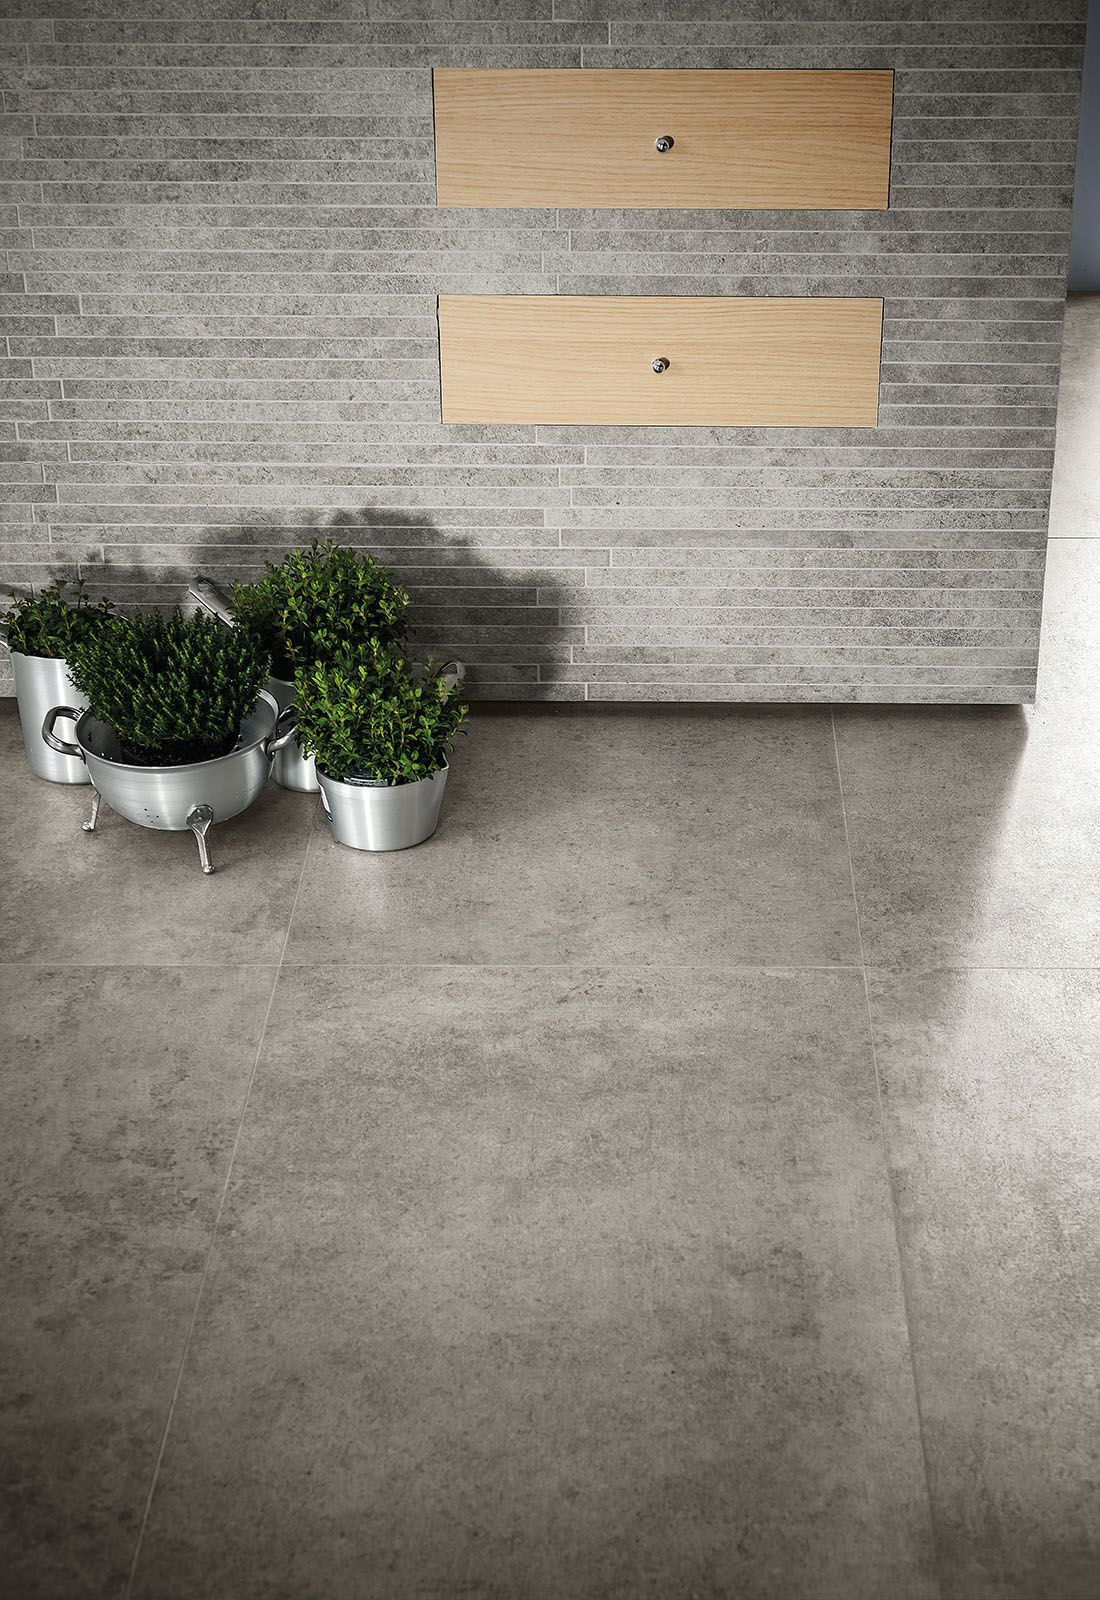 Marazzi Brooklyn Gres Effetto Cemento Exterior Wall Tiles Concrete Floors Tile Floor